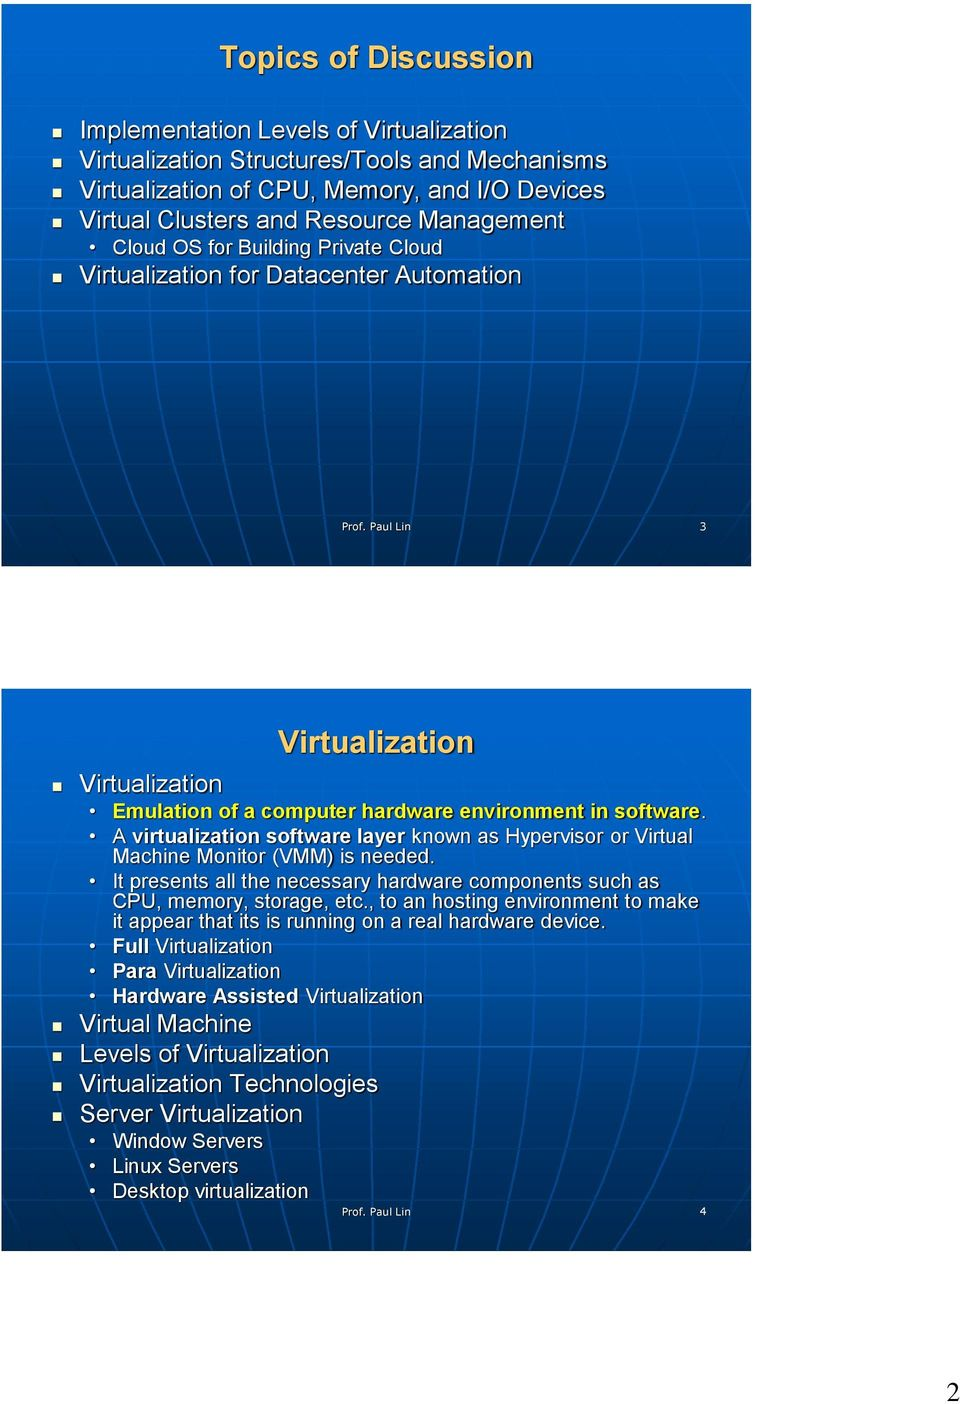 A virtualization software layer known as Hypervisor or Virtual Machine Monitor (VMM) is needed. It presents all the necessary hardware components such as CPU, memory, storage, etc.